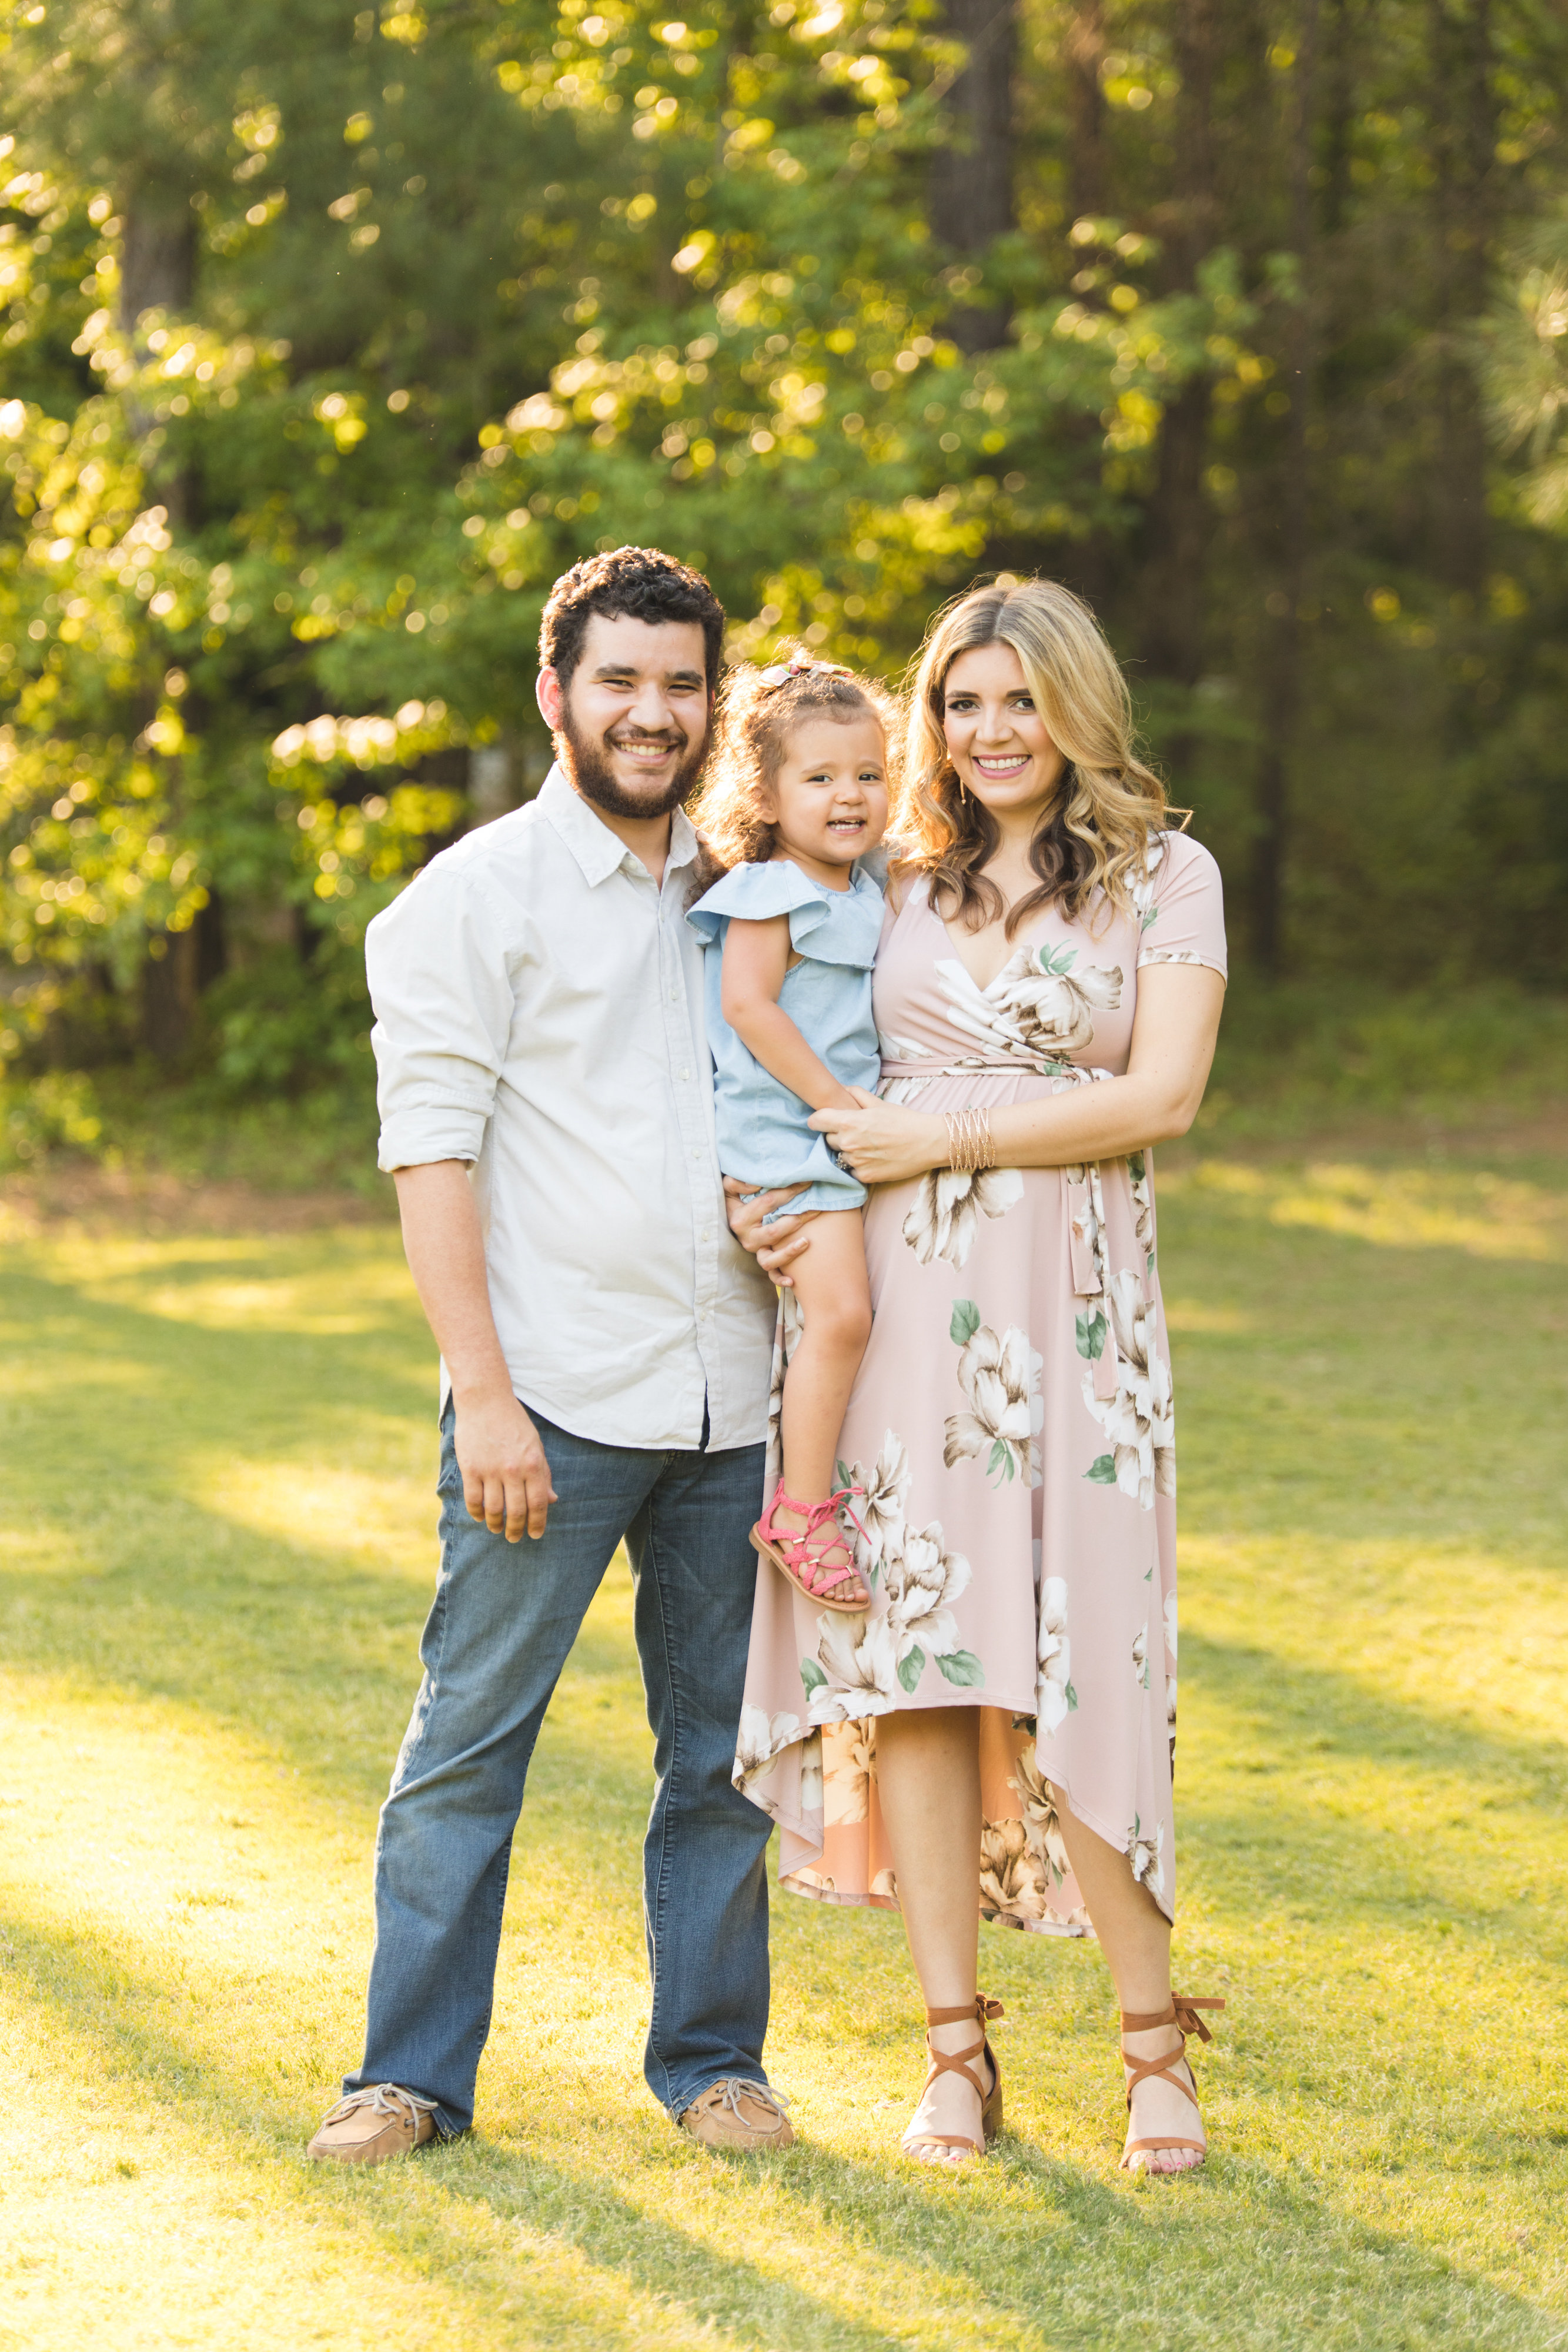 spring family photos - second baby pregnancy announcement | bylaurenm.com